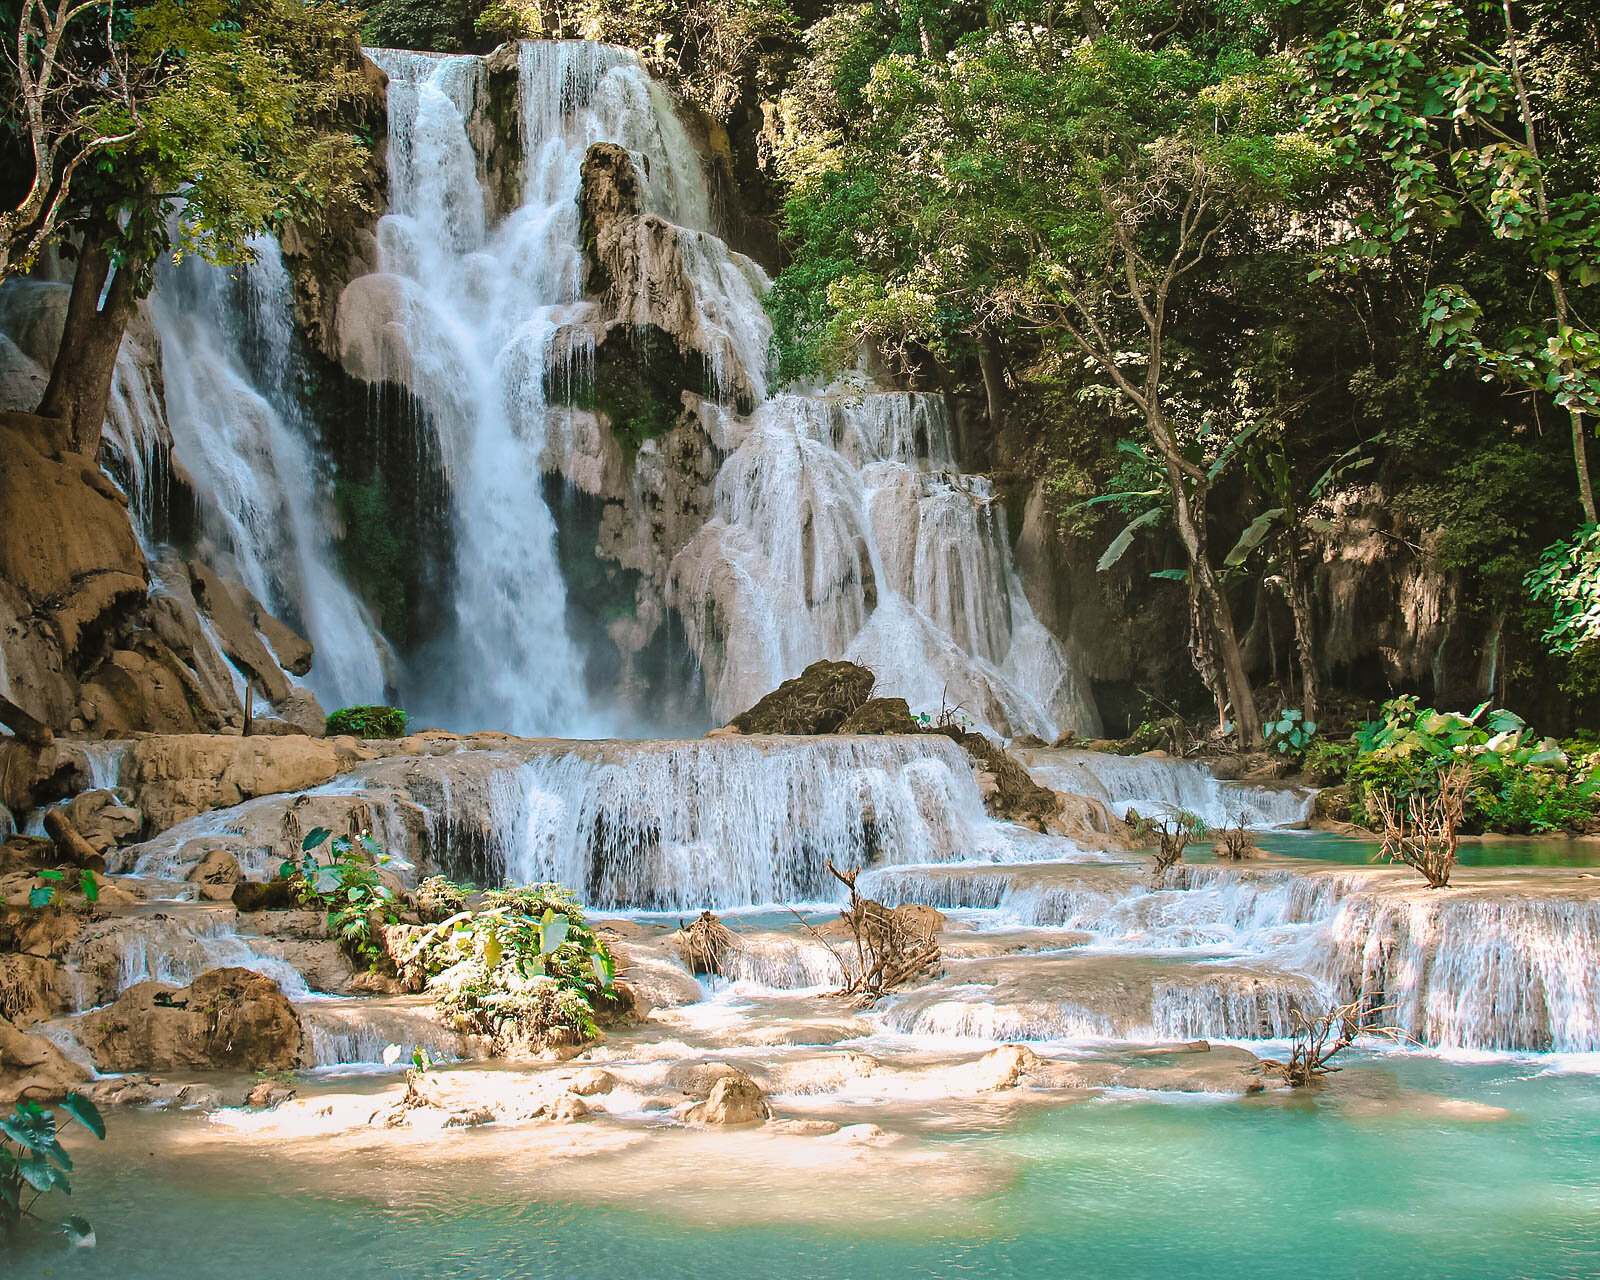 Kuang Si Waterfall, Luang Prabang, Laos - crazy layered waterfall